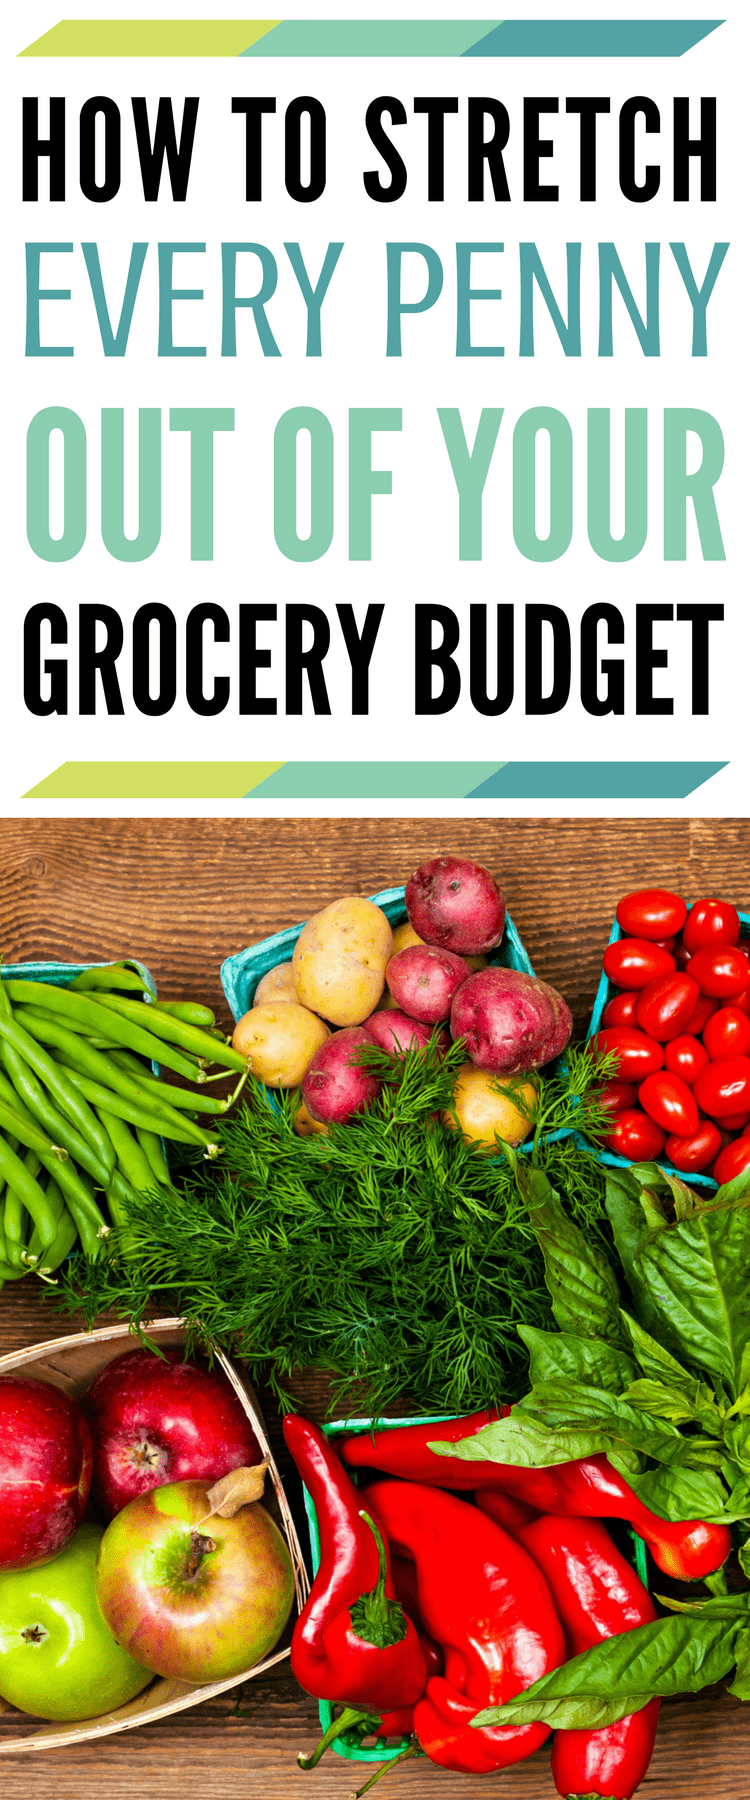 Save money on groceries with these 10 tips that will help you stretch every penny out of your grocery budget